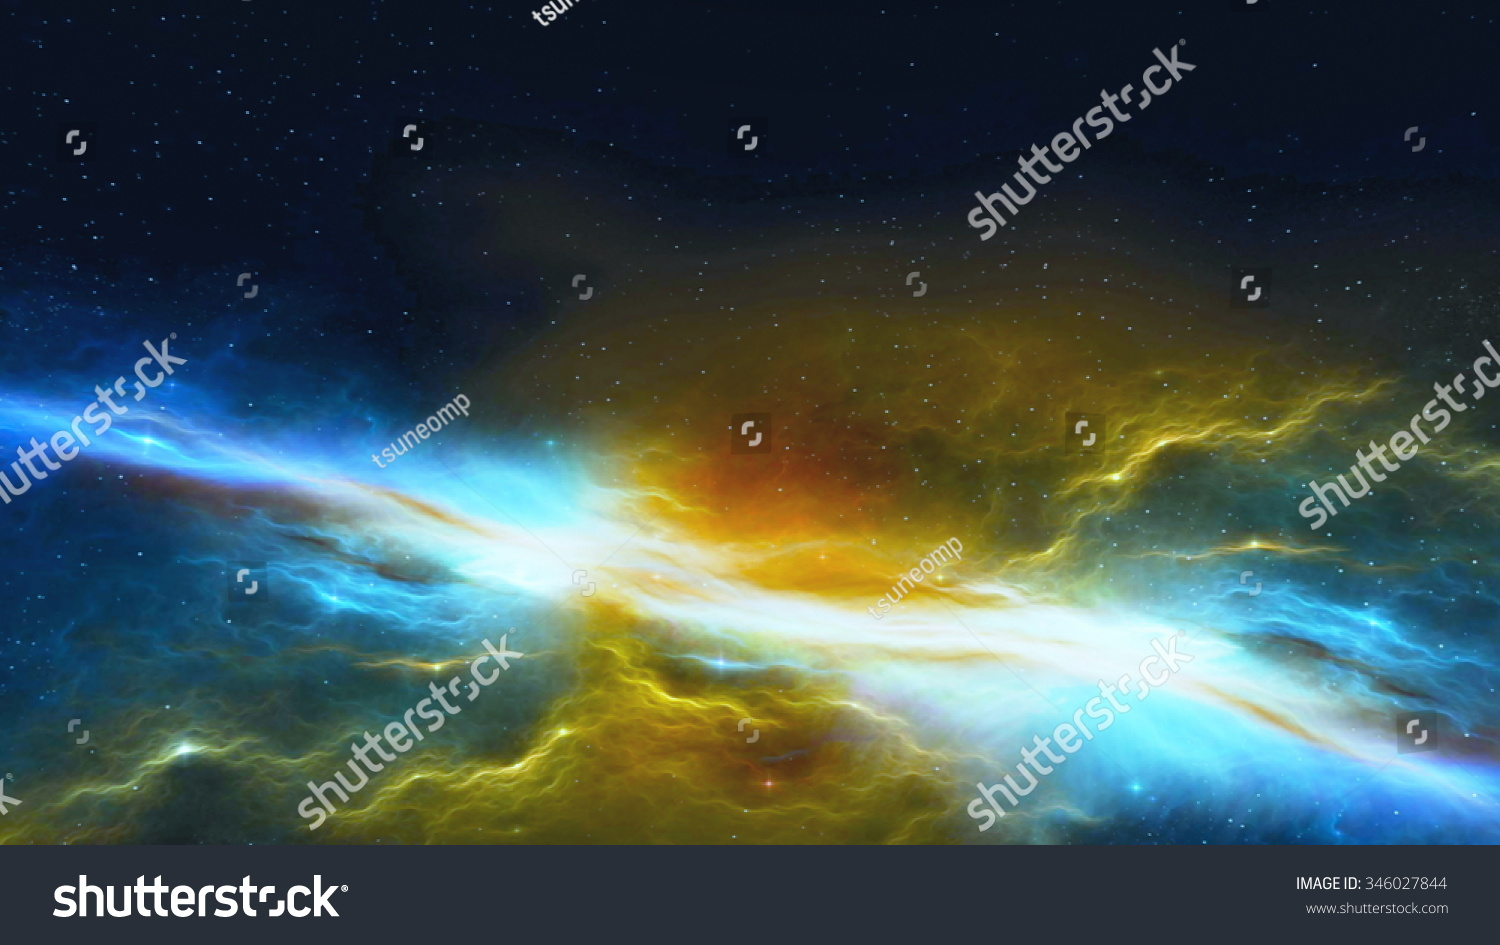 3d illustration of outer space 346027844 shutterstock for 3d outer space